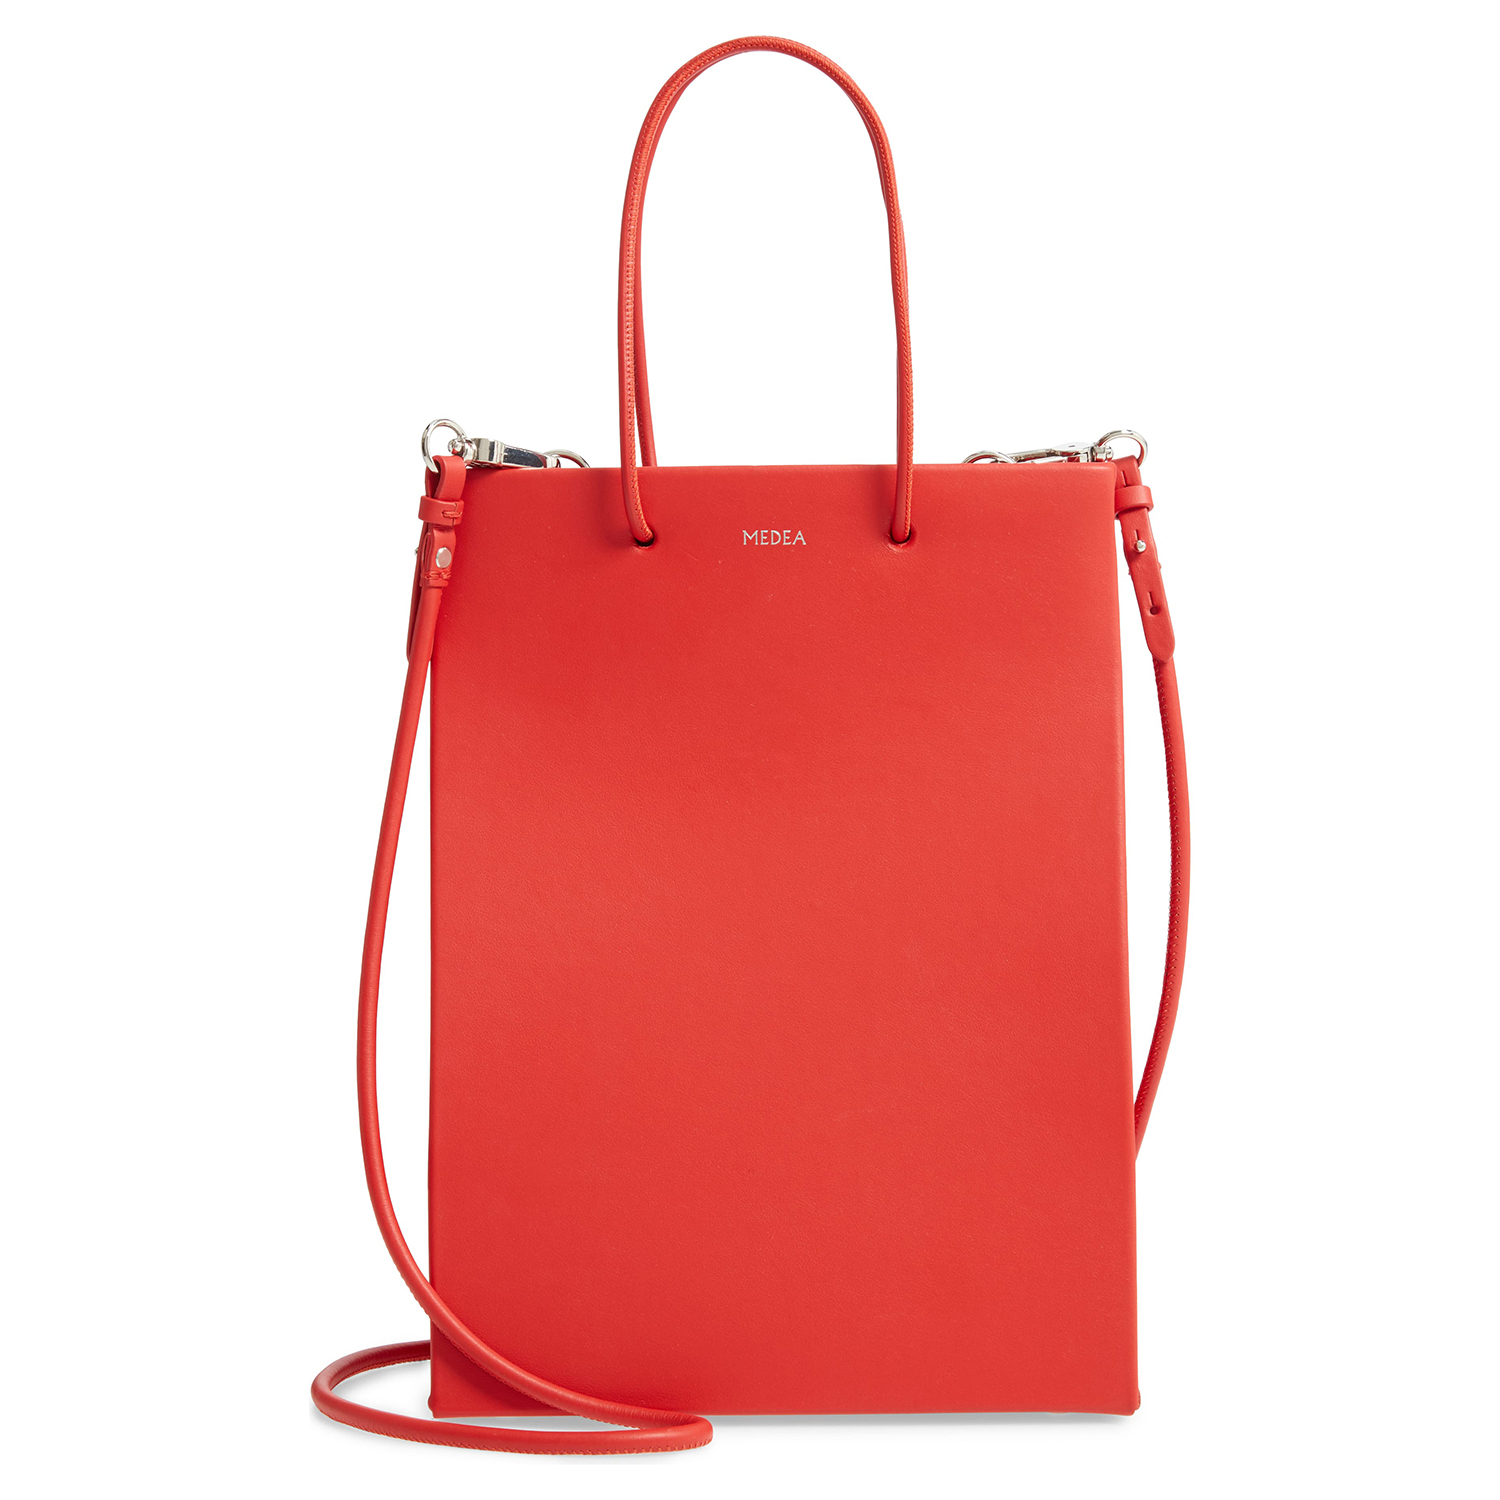 Medea Tall Calfskin Leather Bag